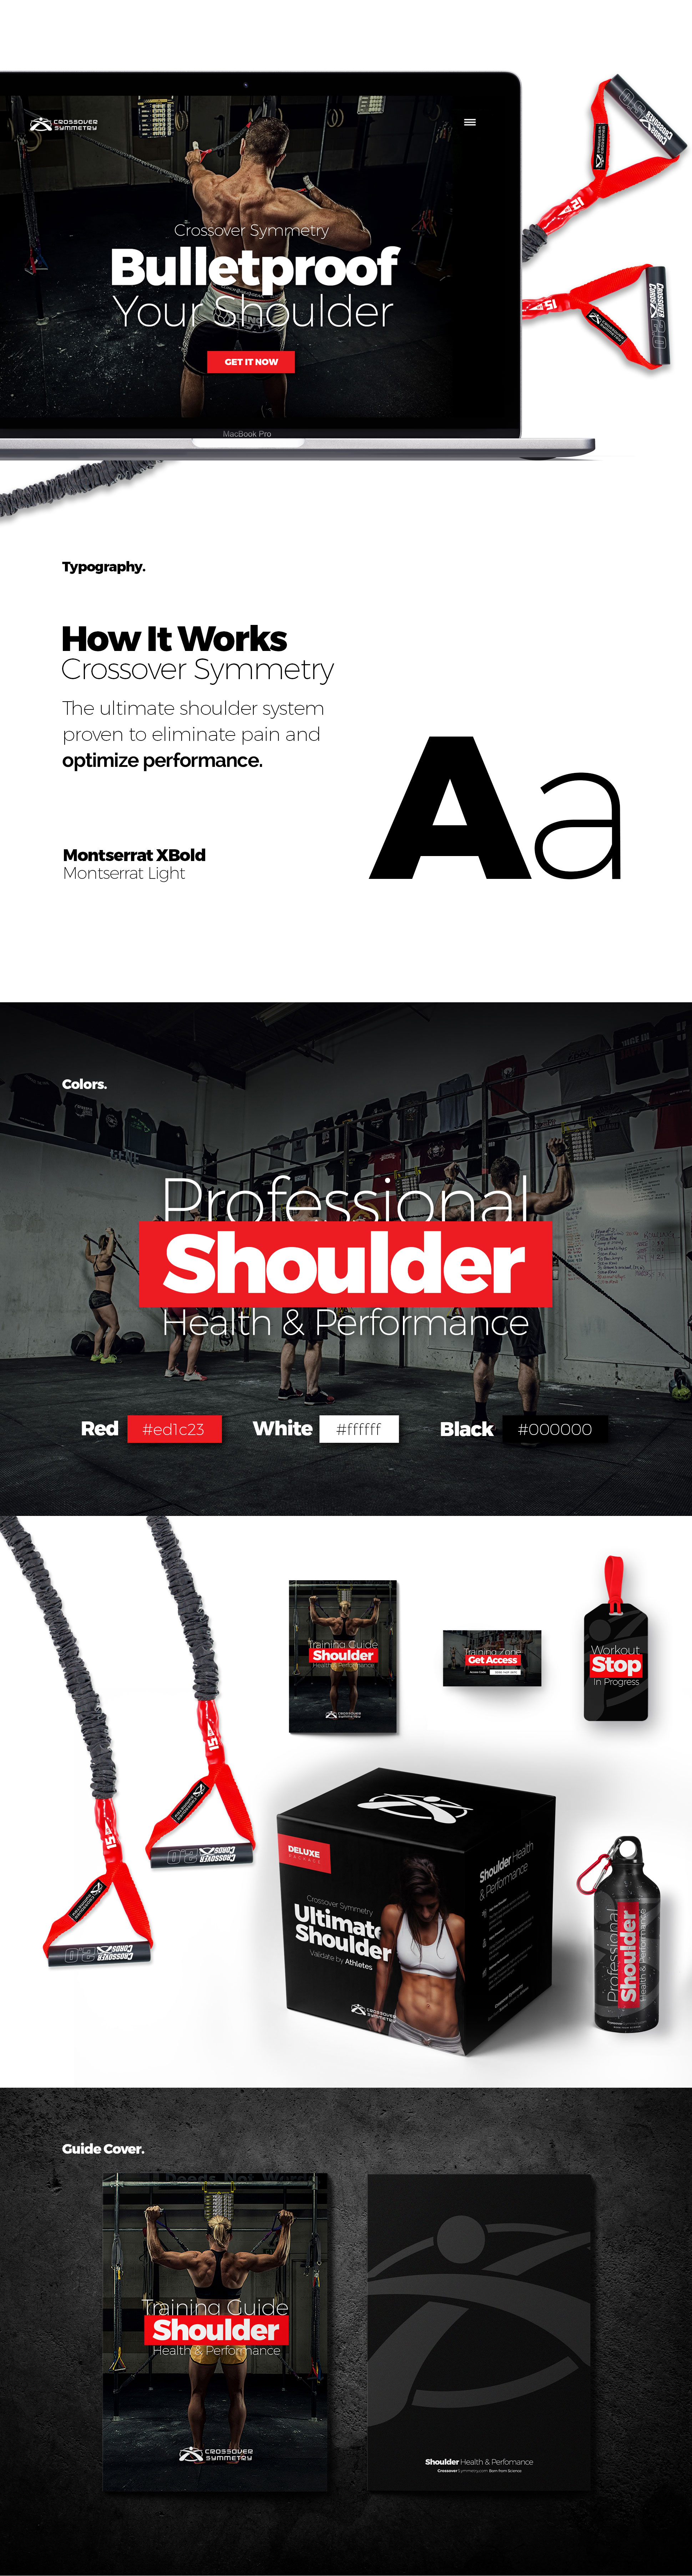 Best Fitness Web Design by Maciej Olbrycht